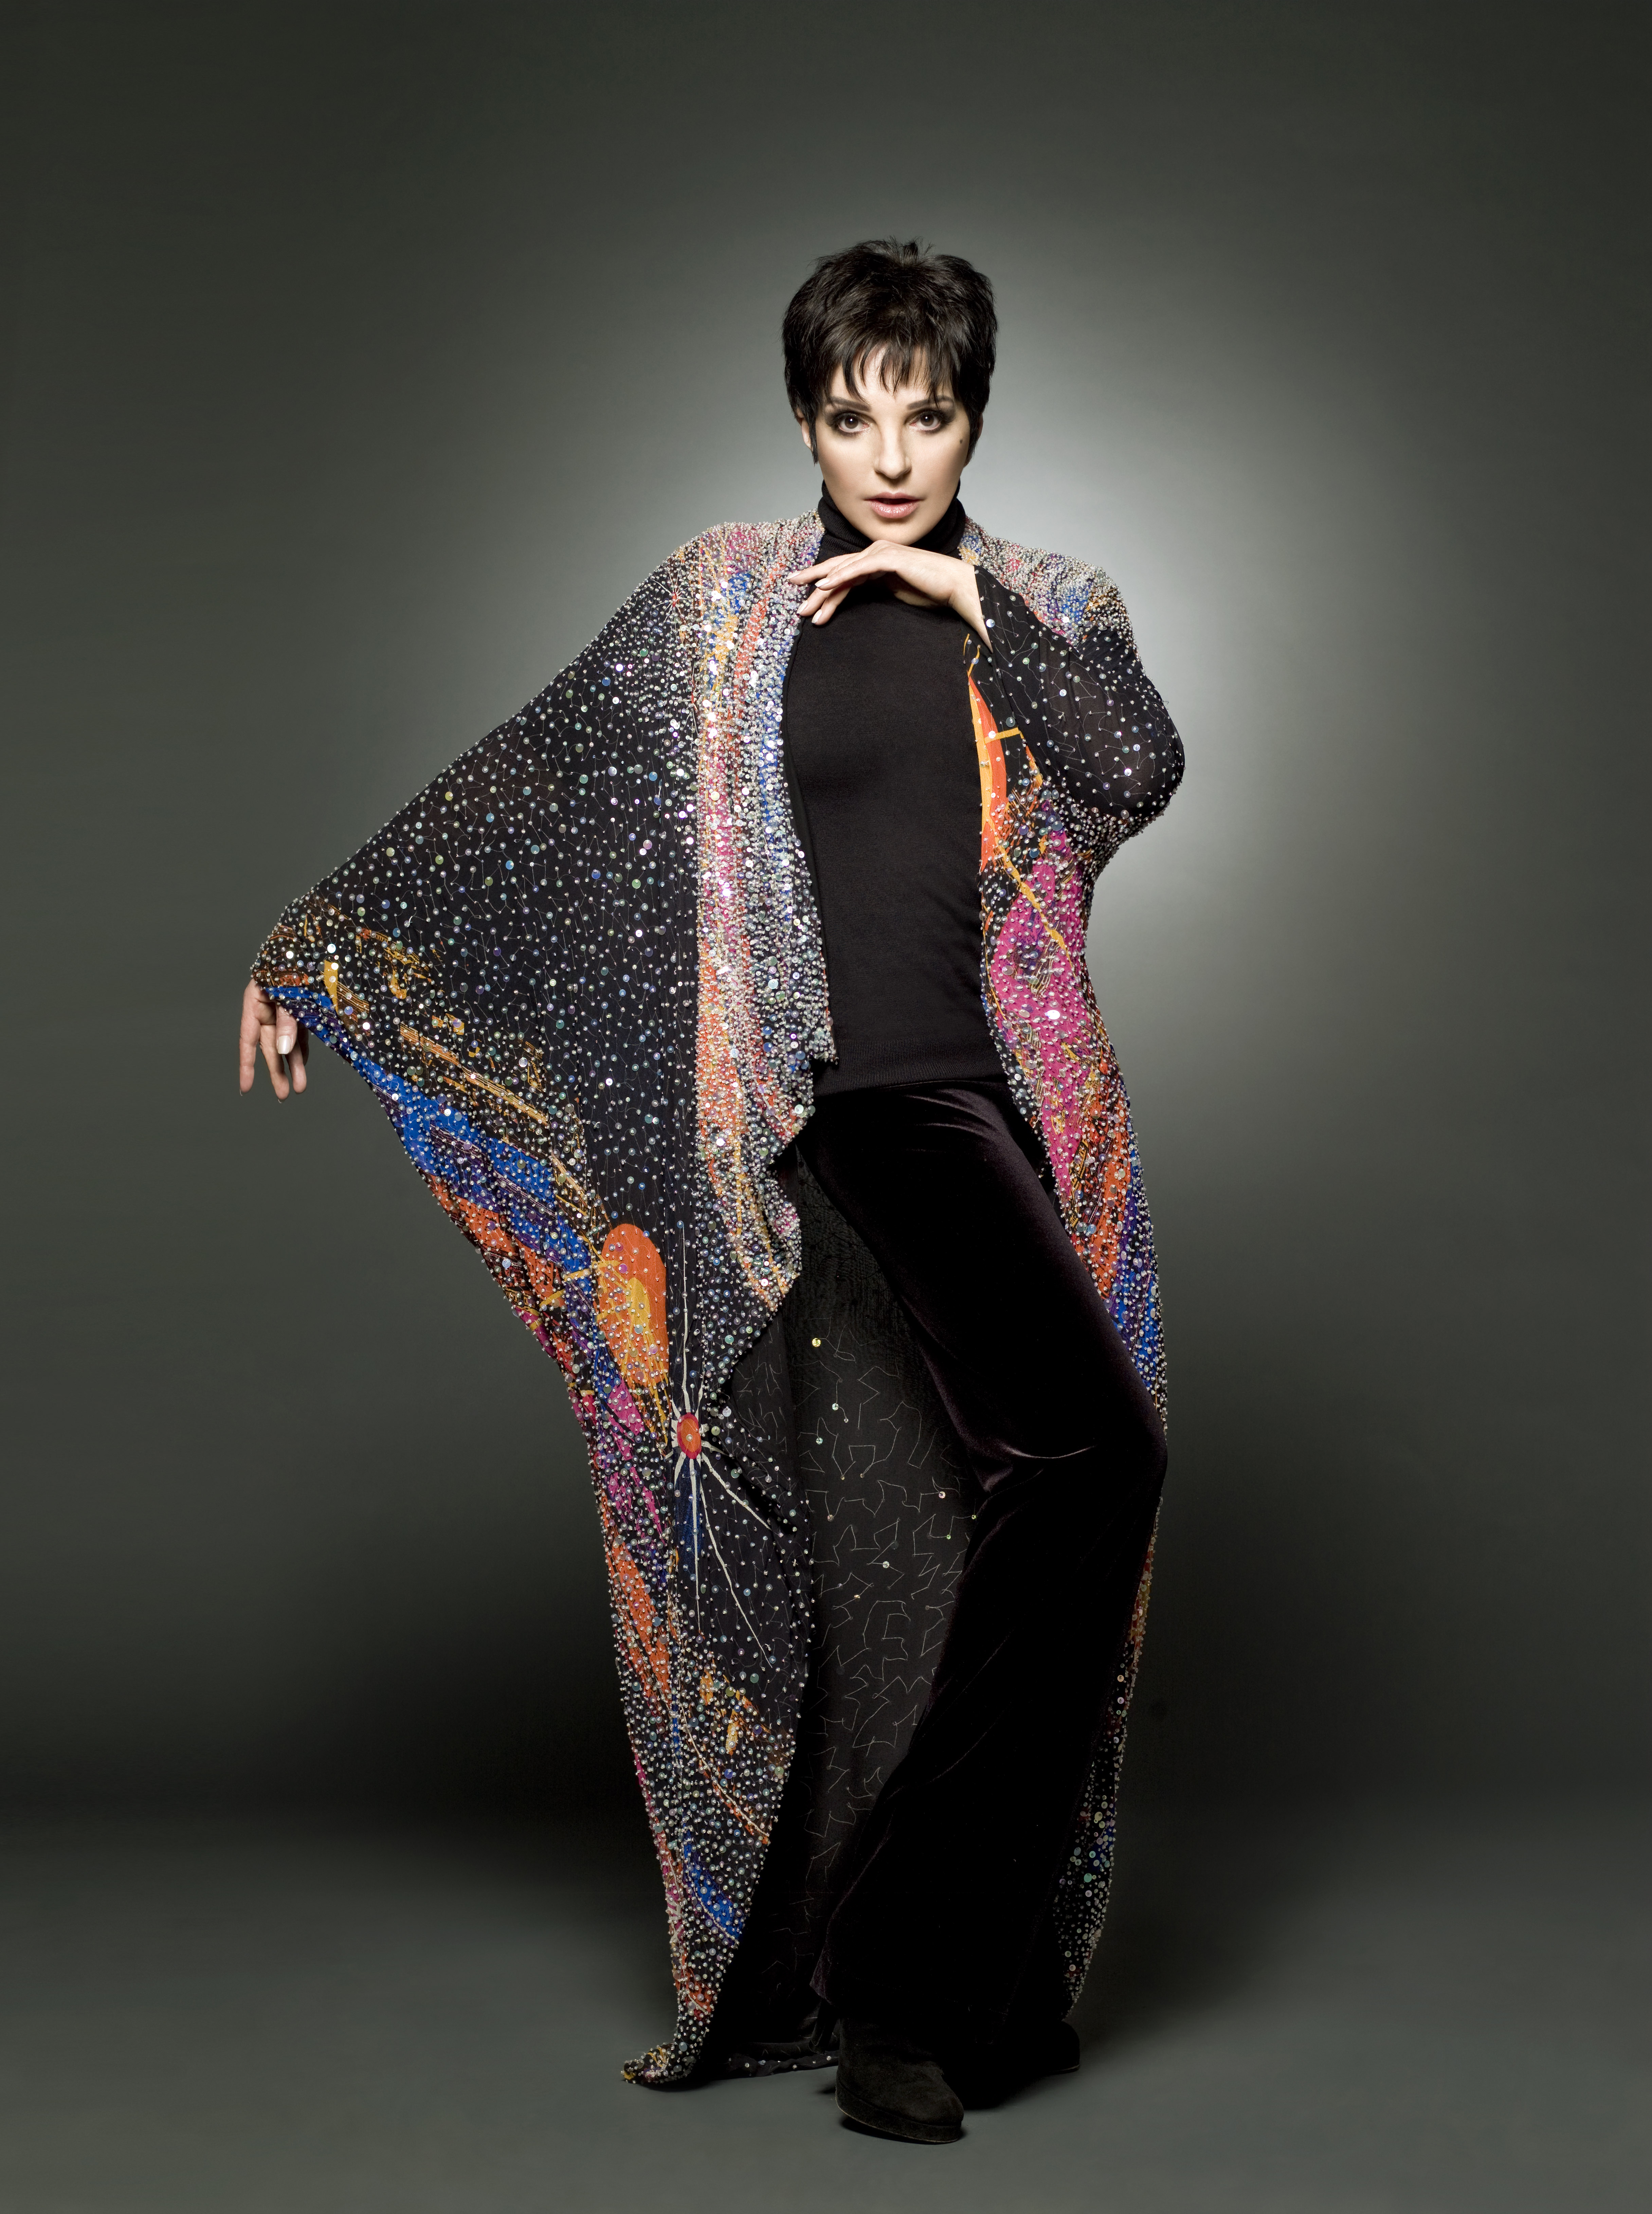 Liza Minnelli Iphone Hd Wallpaper